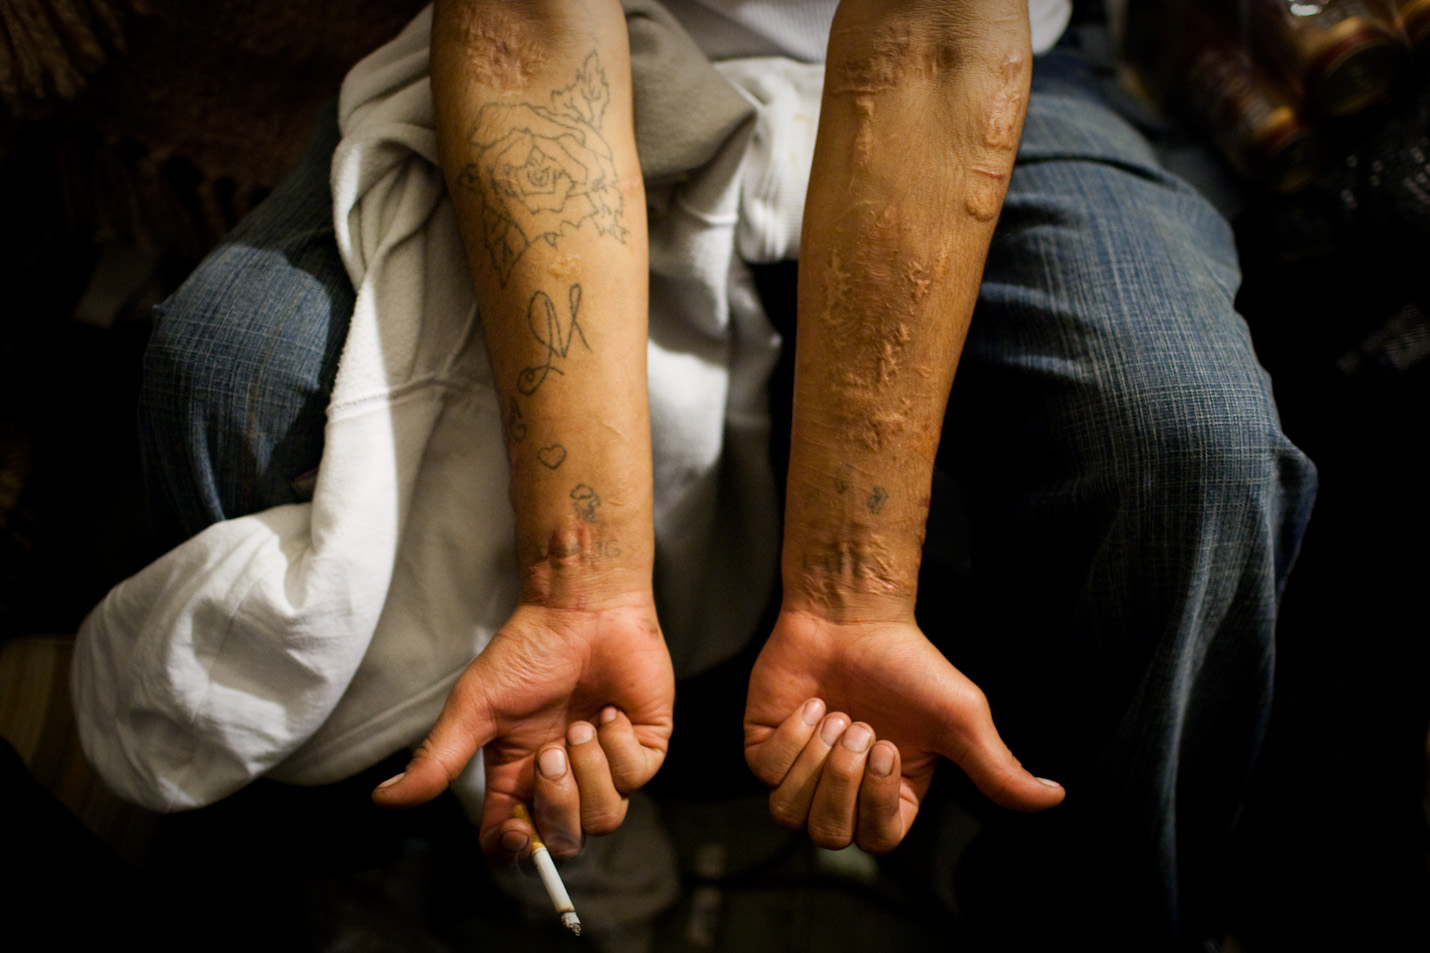 Leston Moran, 24, displays the scars of attempted suicide on Pine Ridge Reservation in South Dakota on Thursday, October 22, 2009.  Moran, recently released from prison for armed robbery, tried to kill himself in prison when his grandmother passed away and he wasn't able to attend the services.